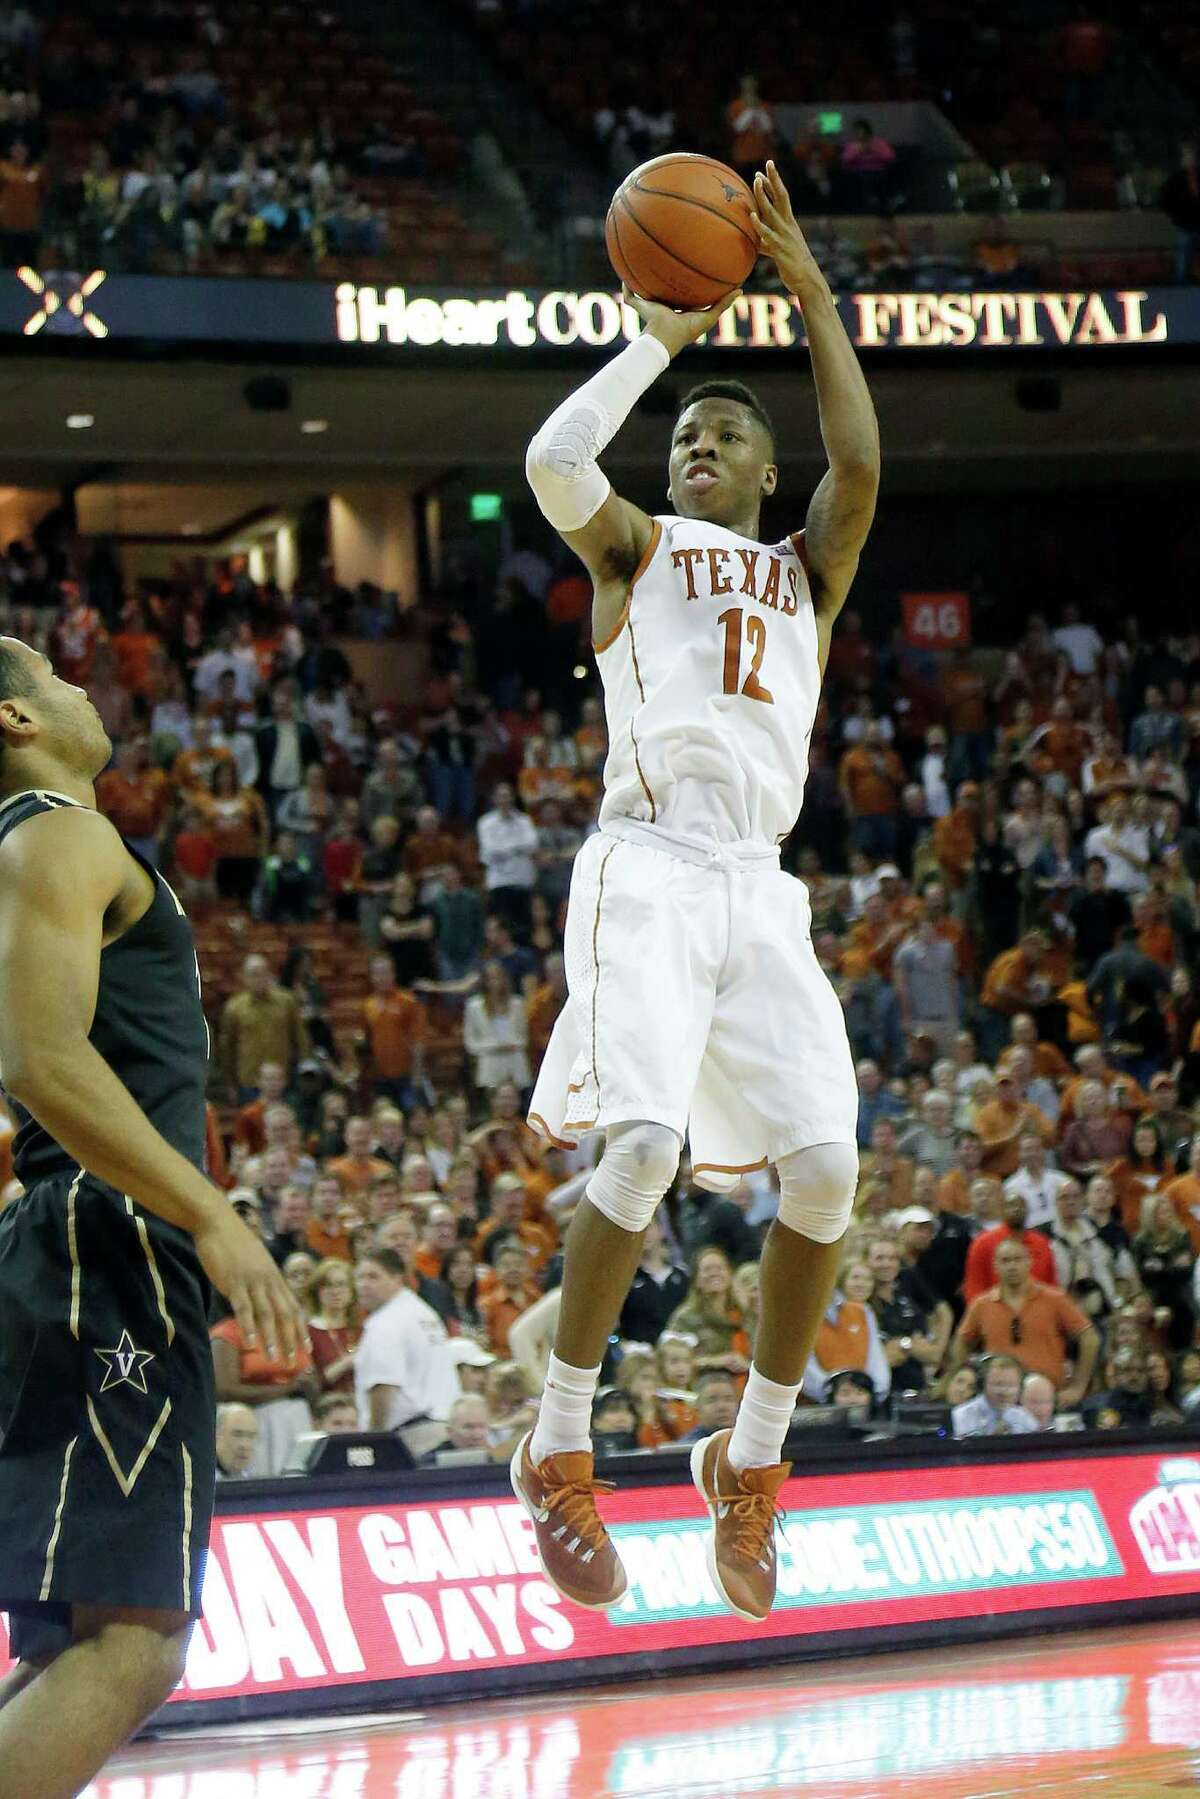 AUSTIN, TX - JANUARY 30: Kerwin Roach Jr. #12 of the Texas Longhorns shoots the ball against the Vanderbilt Commodores at the Frank Erwin Center on January 30, 2016 in Austin, Texas.